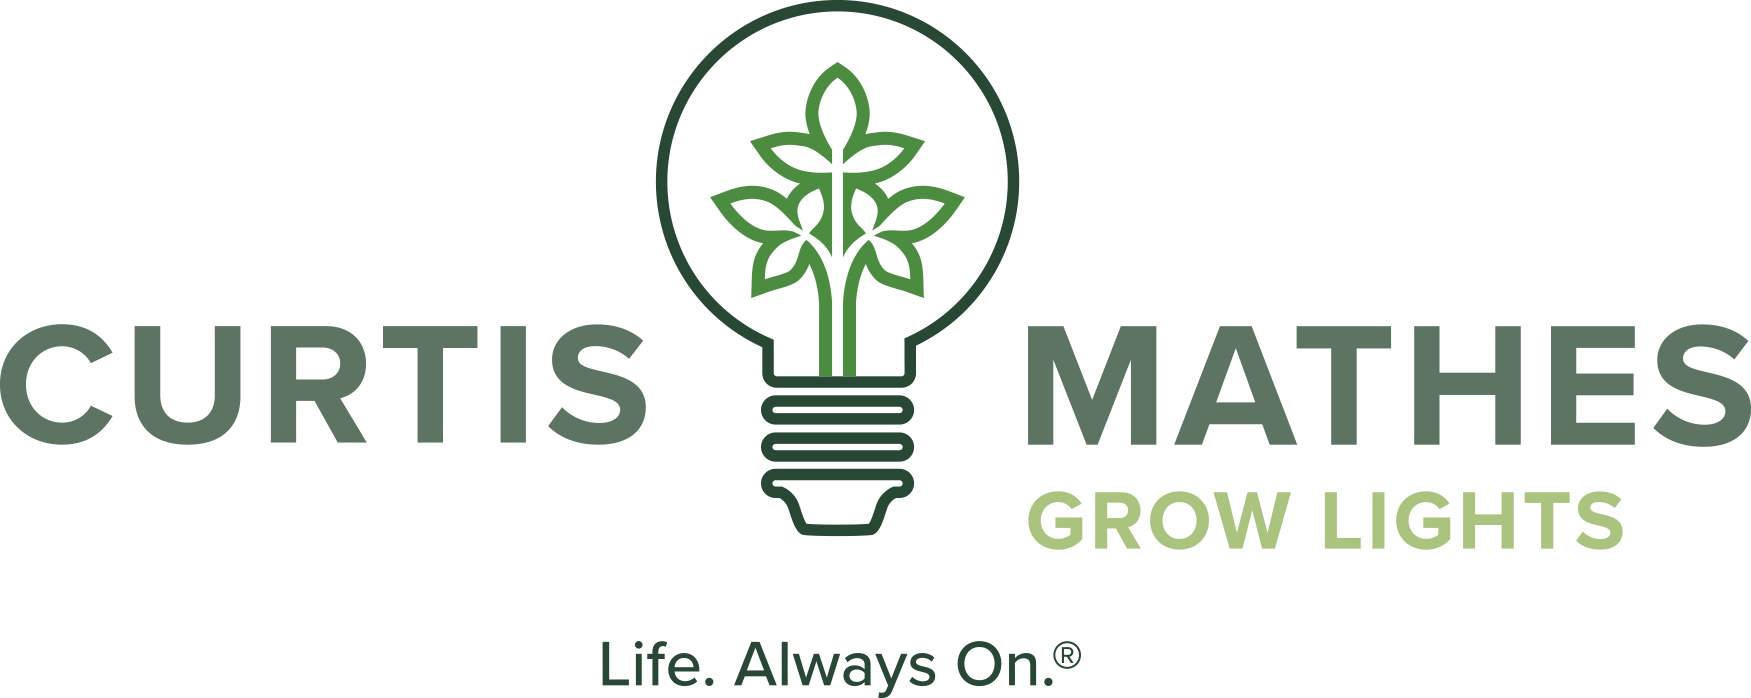 Curtis Mathes Grow Lights, Inc.